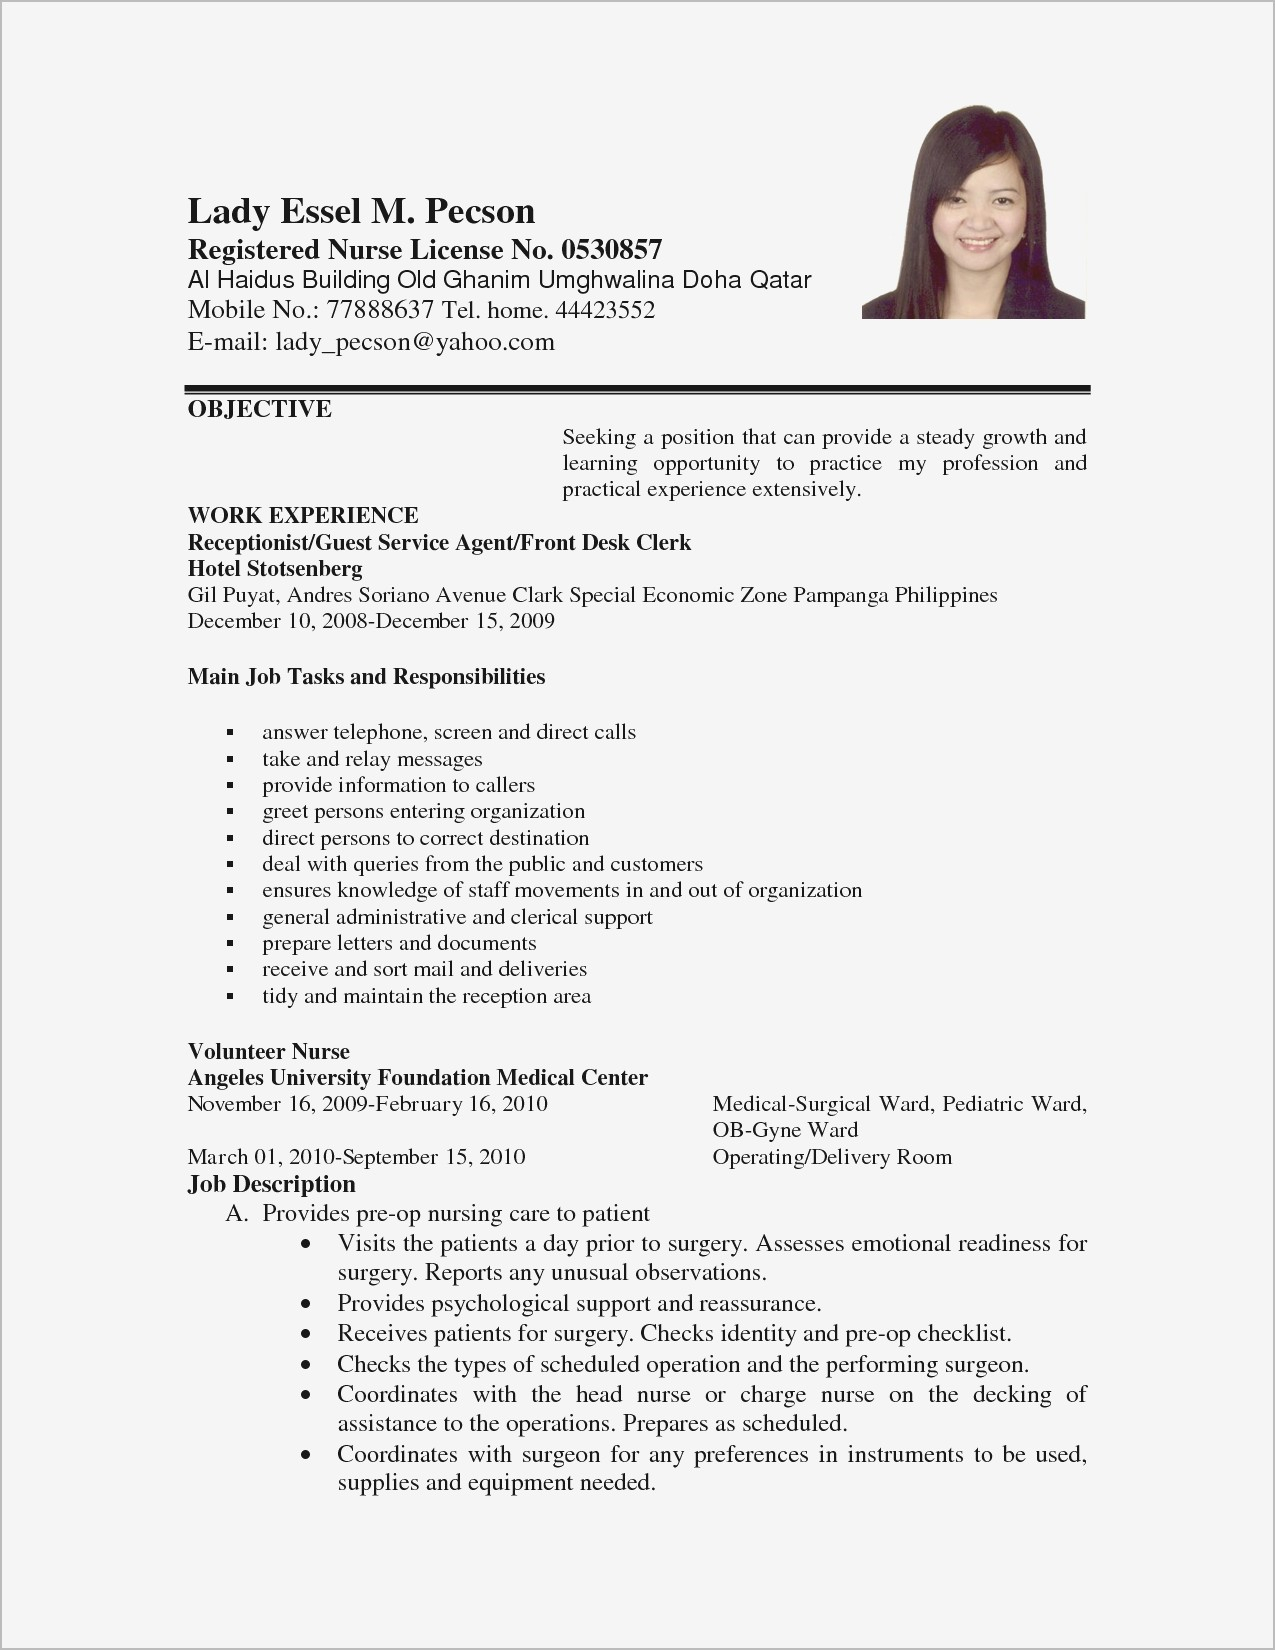 Fbi Resume - Front Desk Agent Resume Unique Series 6 Resume Insurance Agent